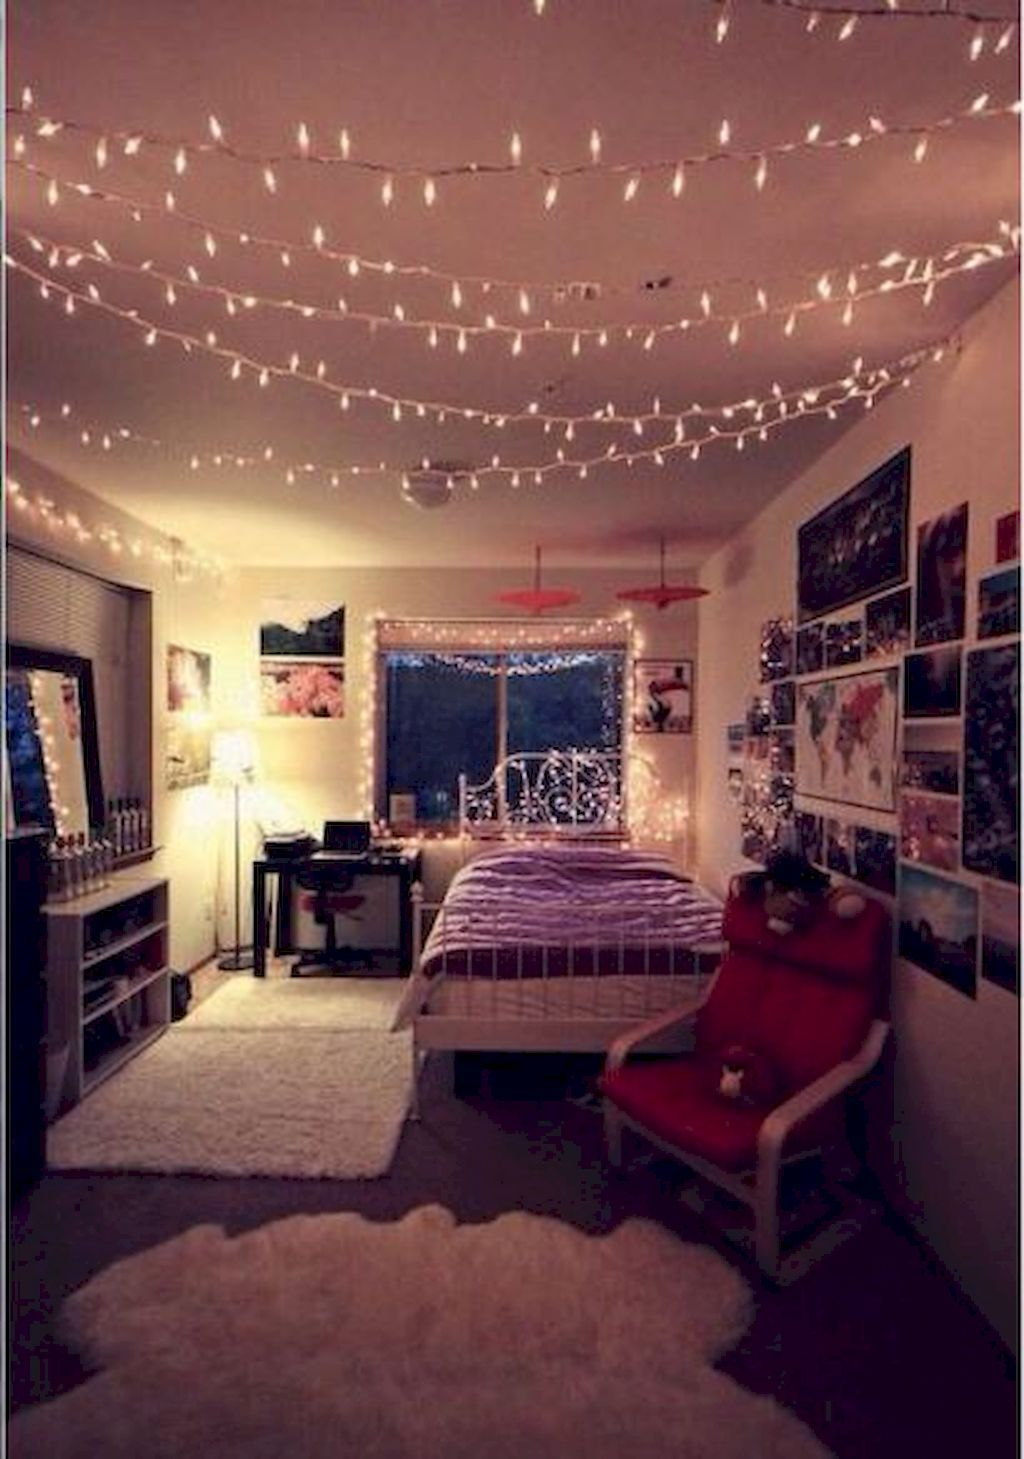 Stunning And Cute Dorm Room Decorating Ideas 48 Interiør Jenterom Hus Interiør